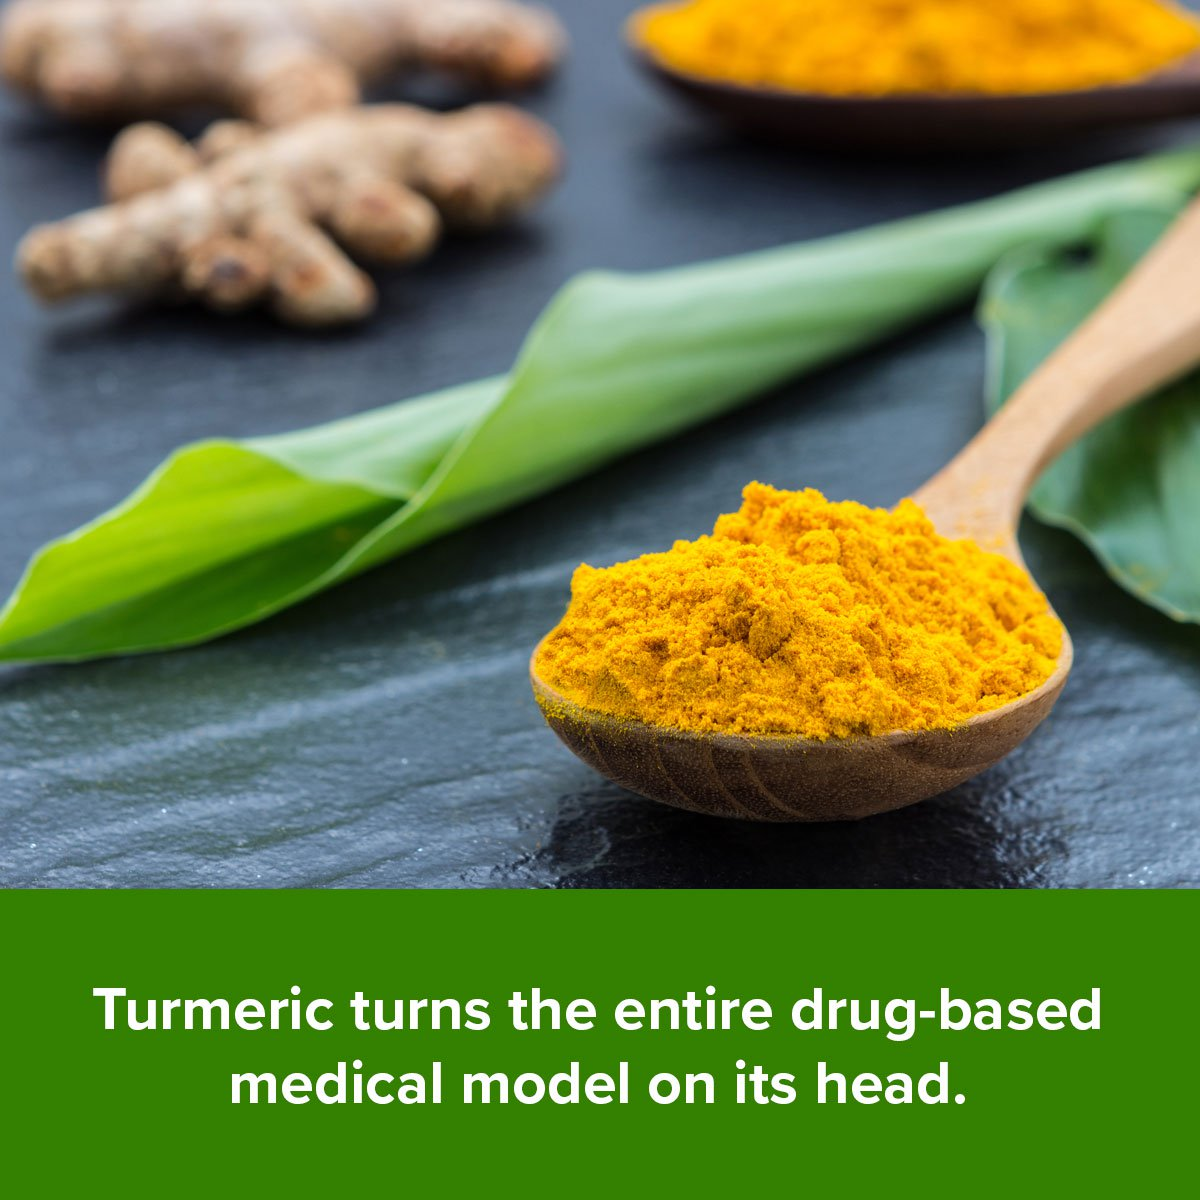 Turmeric turns the entire drug-based medical model on its head.